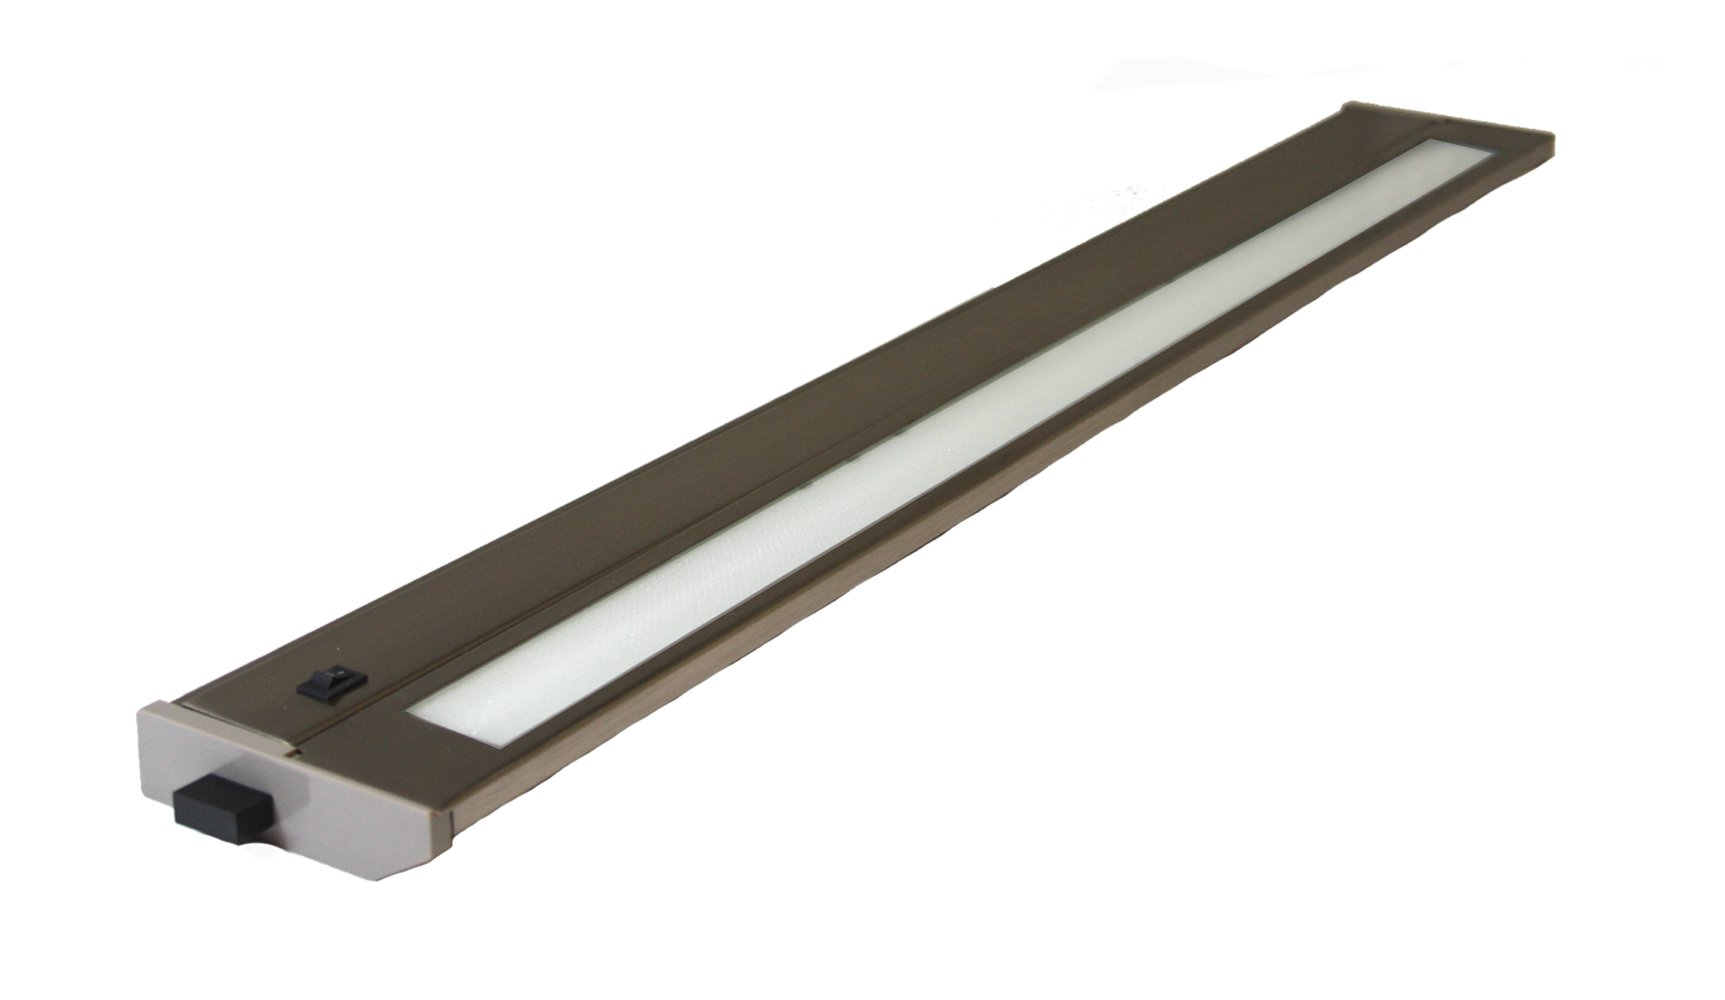 American Lighting 043T-28-BS Hardwire Fluorescent Under Cabinet Lighting, 18-Watt Lamp with On/Off Switch, 120-Volt, Brushed Steel, 28-Inch by American Lighting (Image #1)